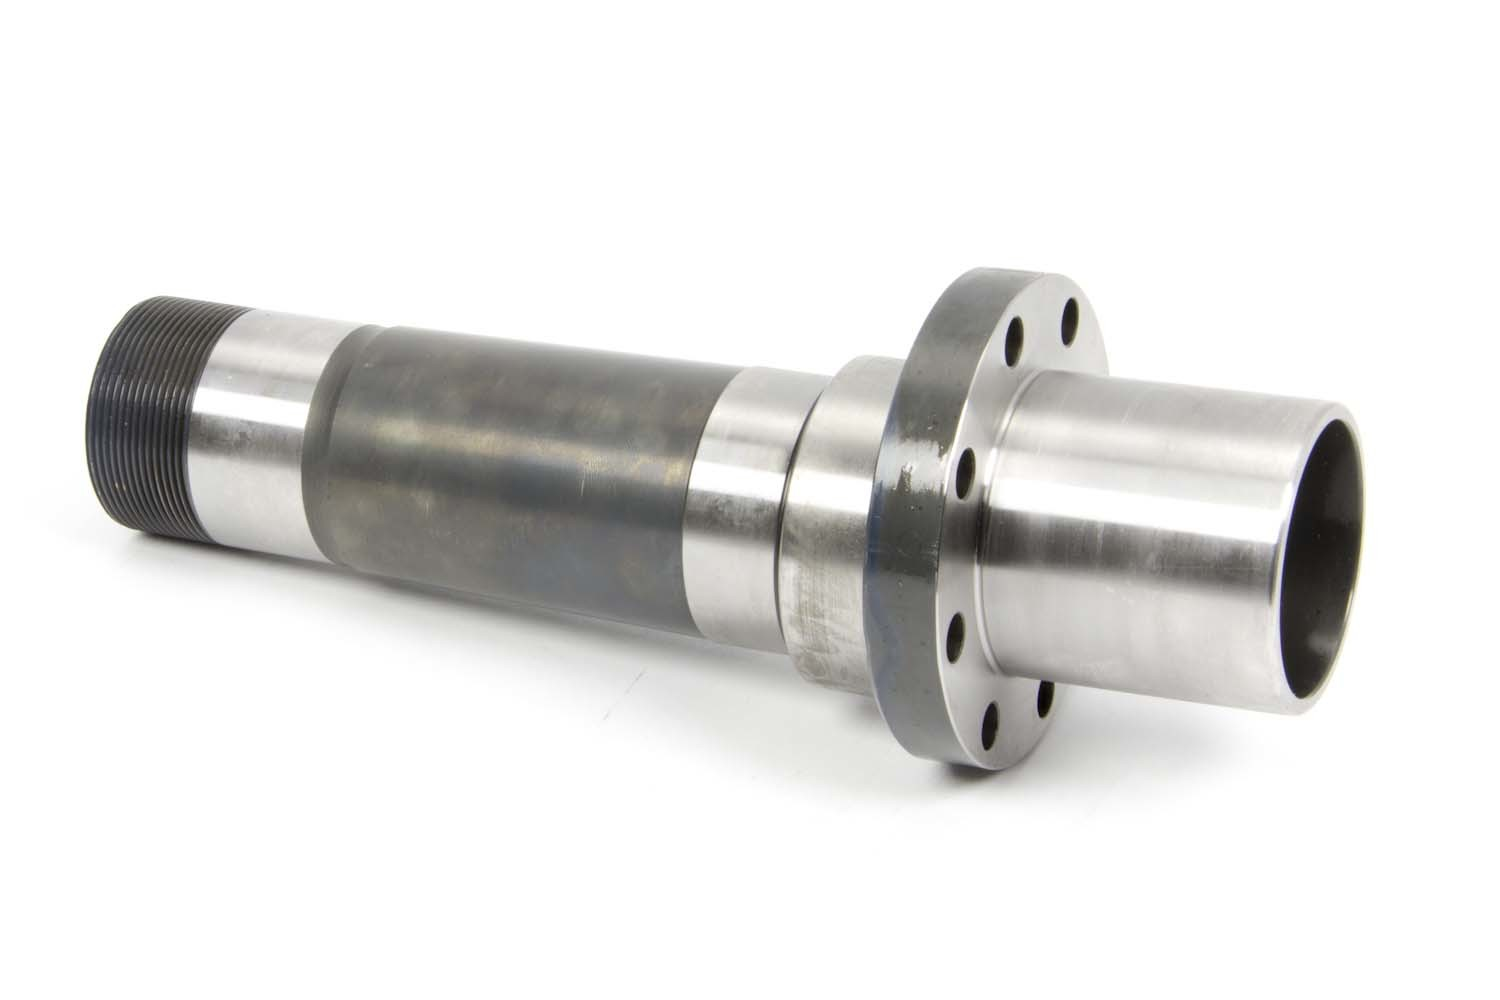 8 Bolt Cambered Spindle Wide 5 Snout 1-1/2 deg